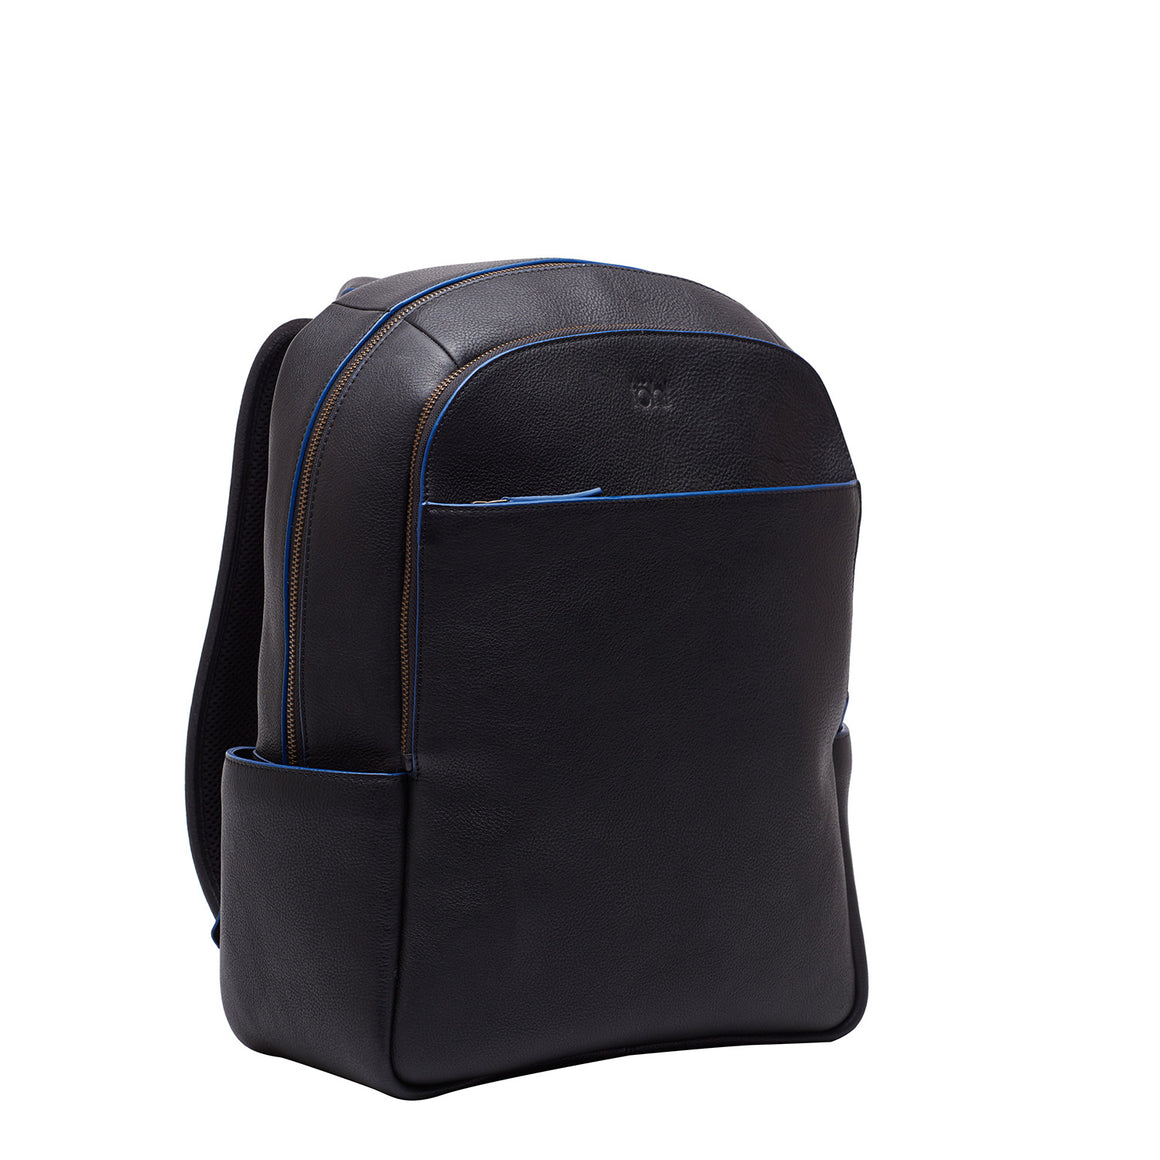 BP 0012 - TOHL BELLONE MEN'S BACKPACK - CHARCOAL BLACK